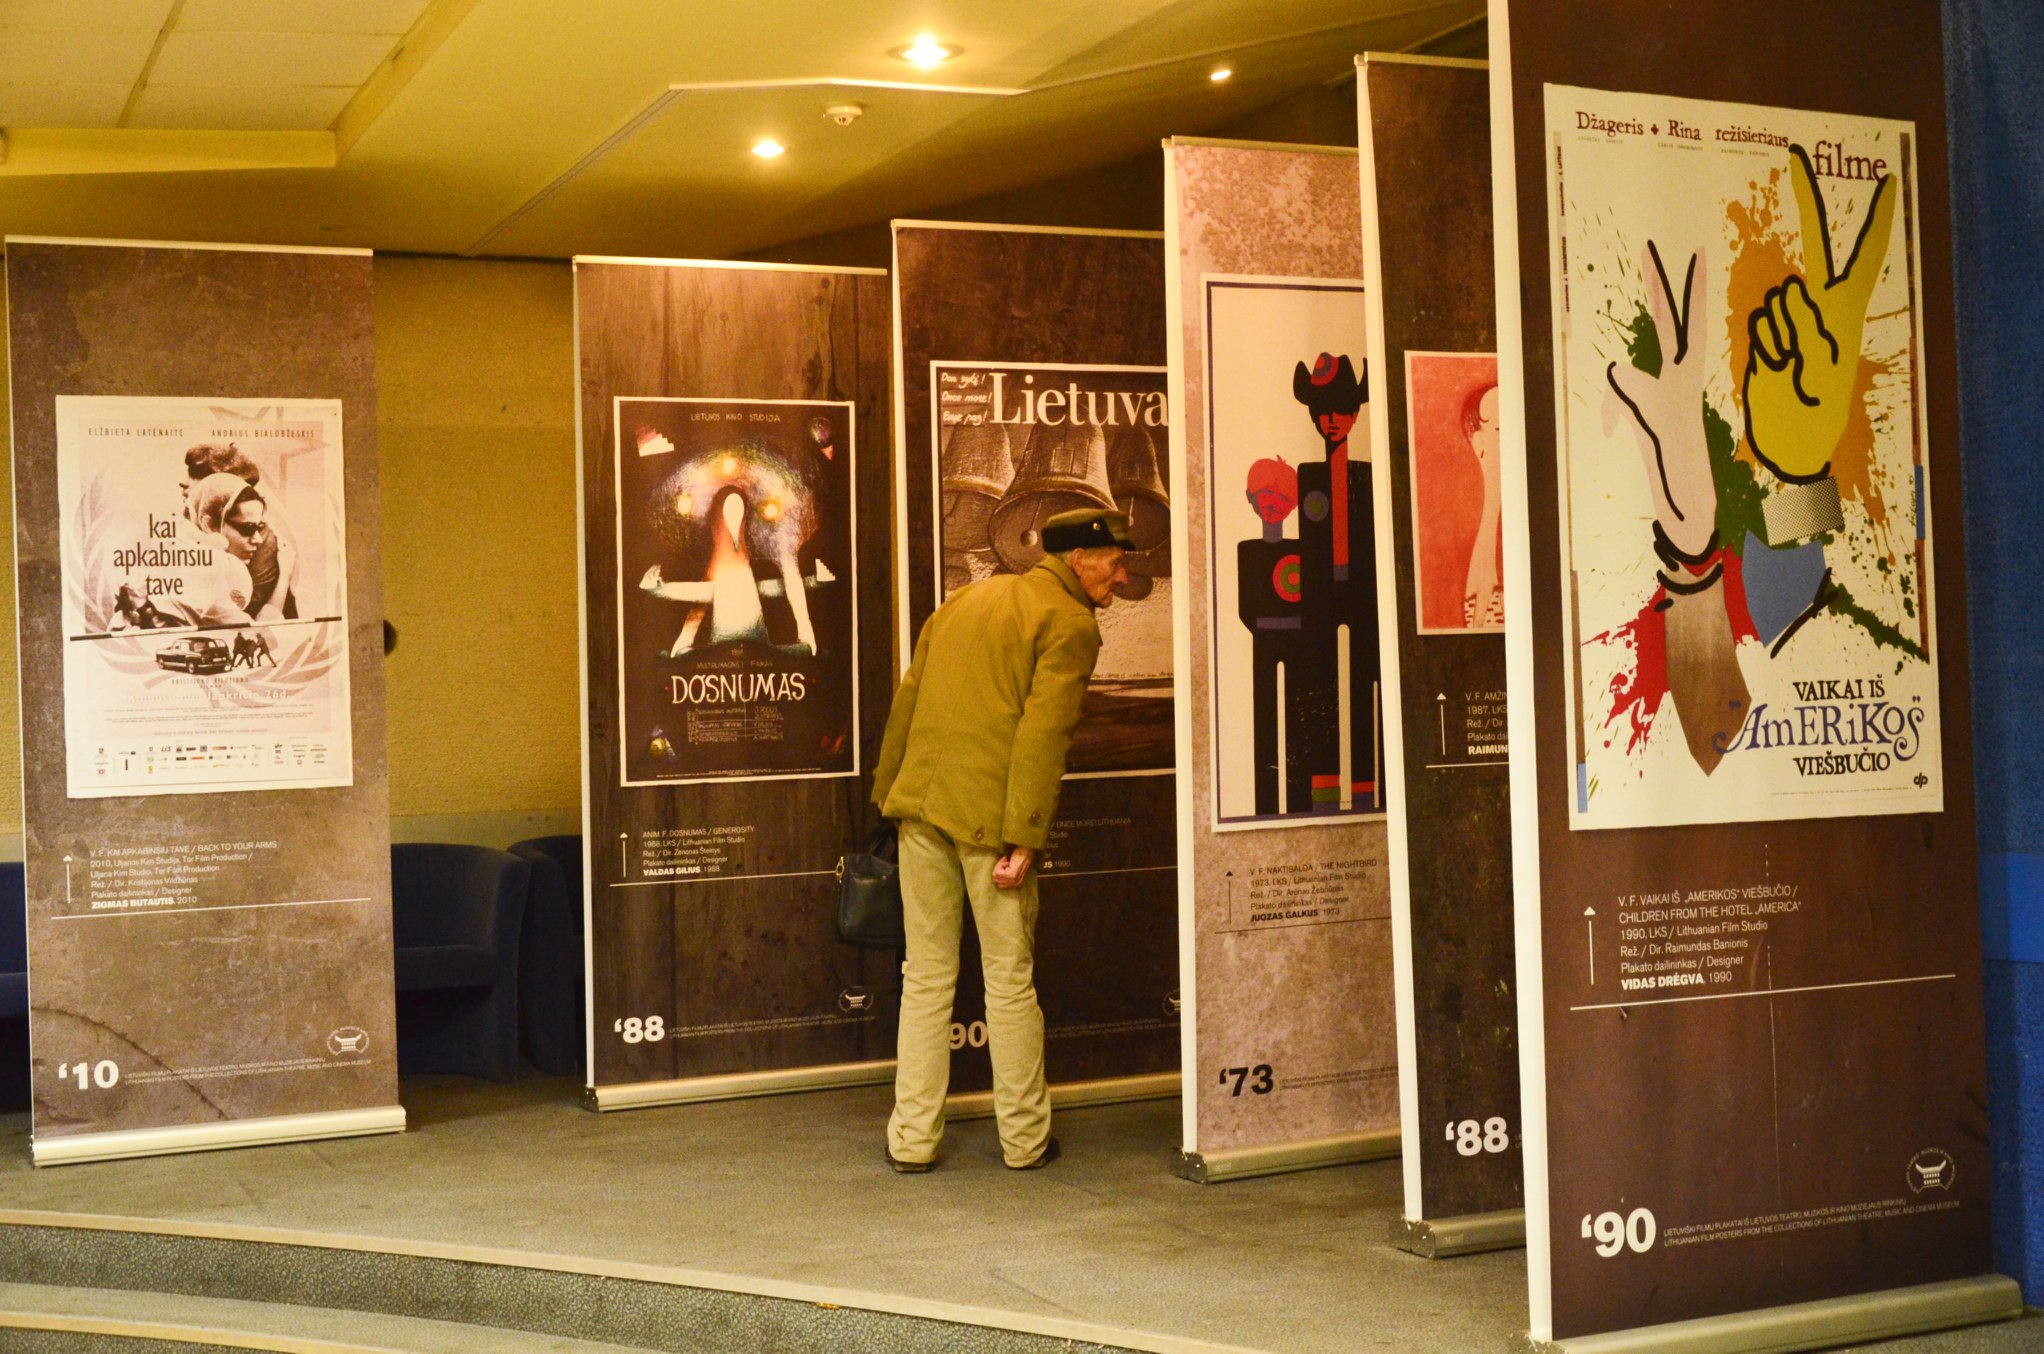 Exhibition of posters of Lithuanian films